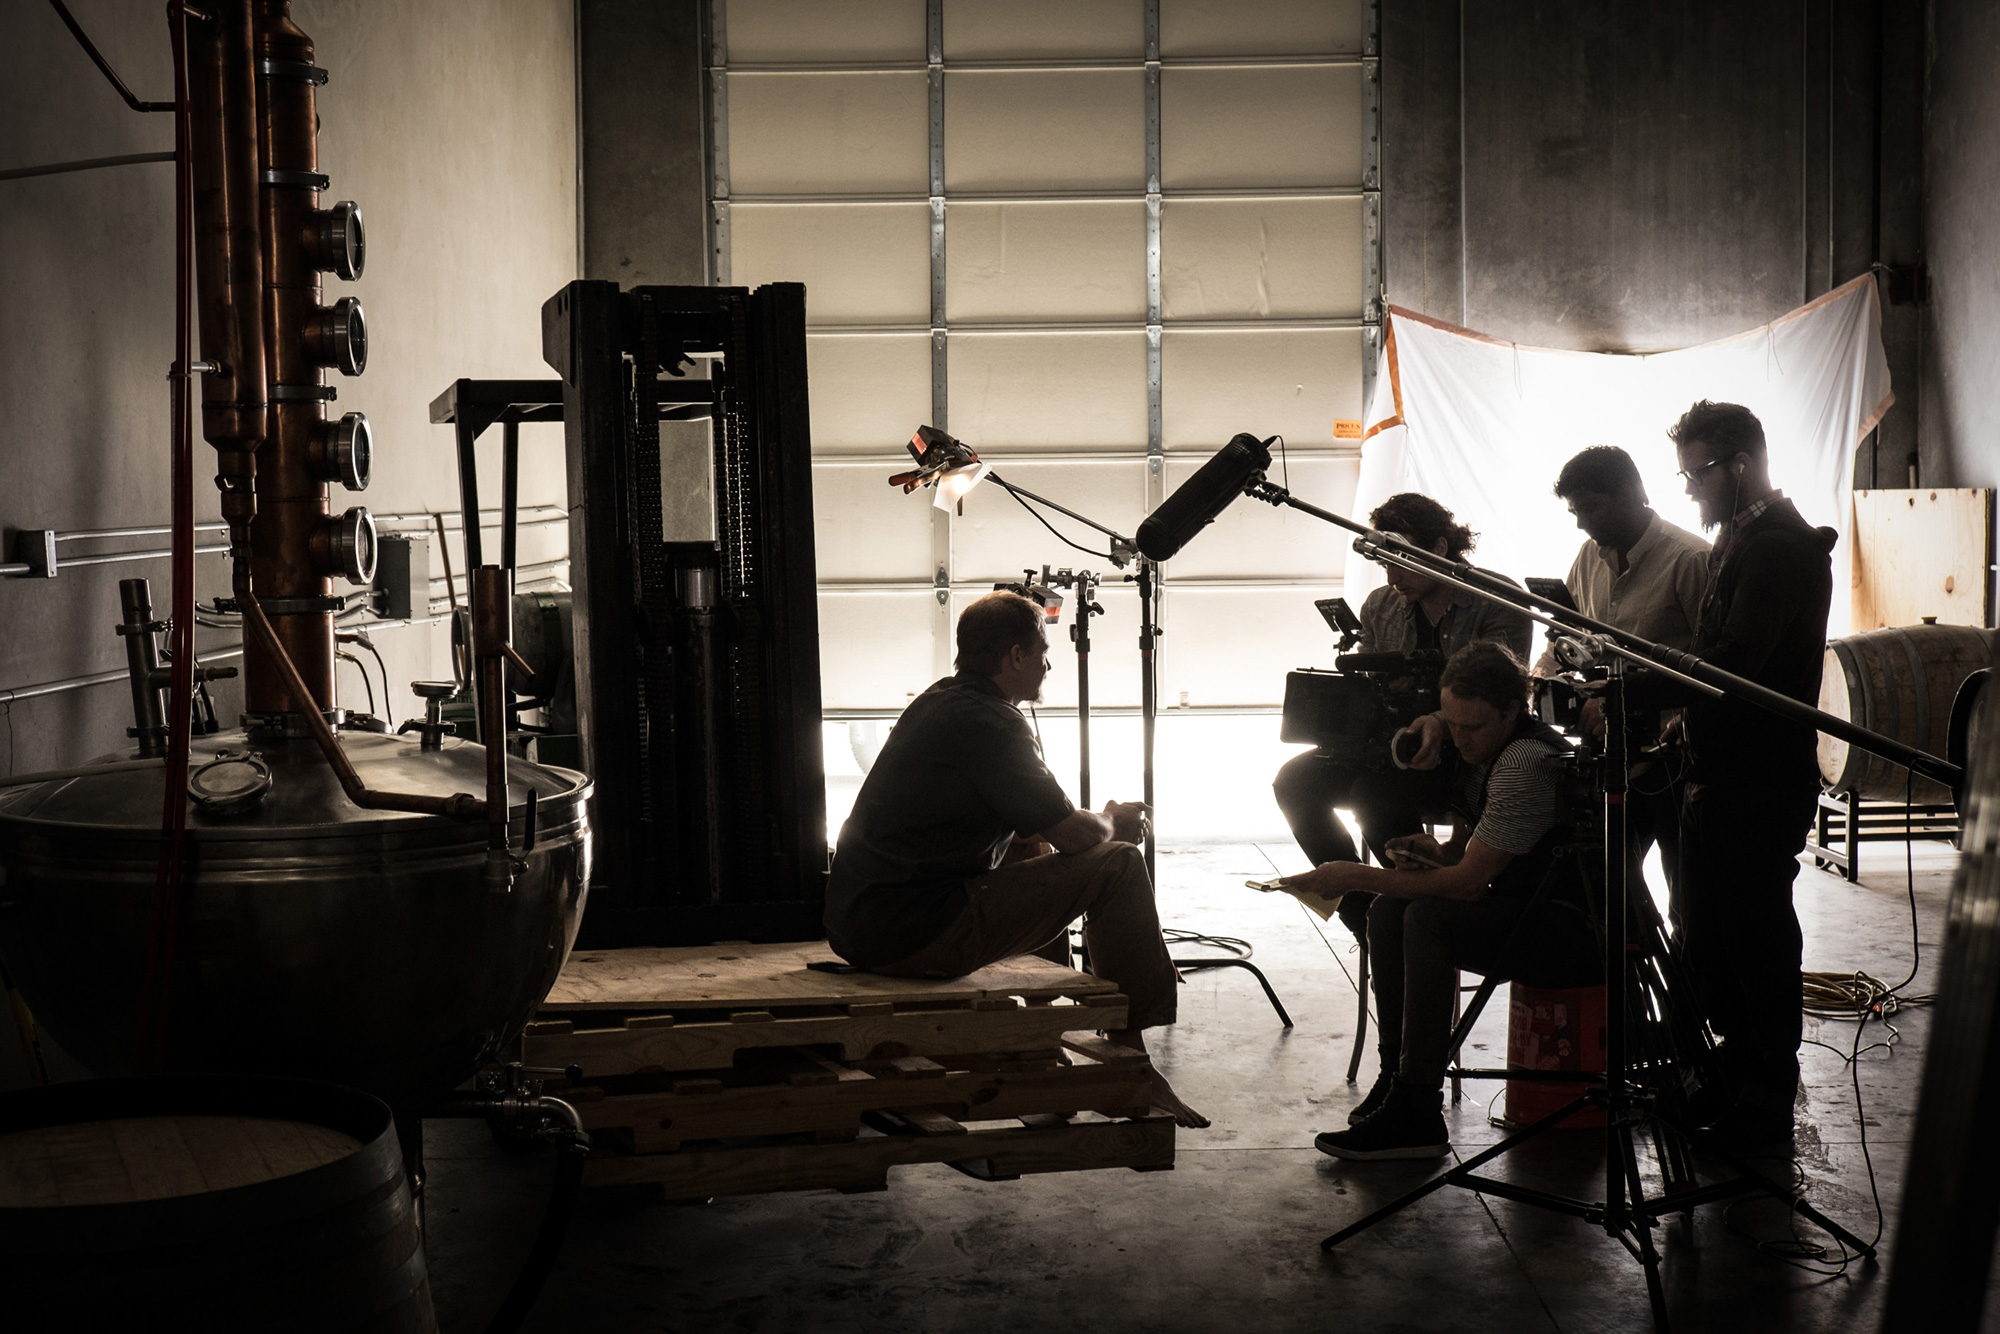 Beehive Distilling Small Batch Craft Gin Salt Lake City Utah 17